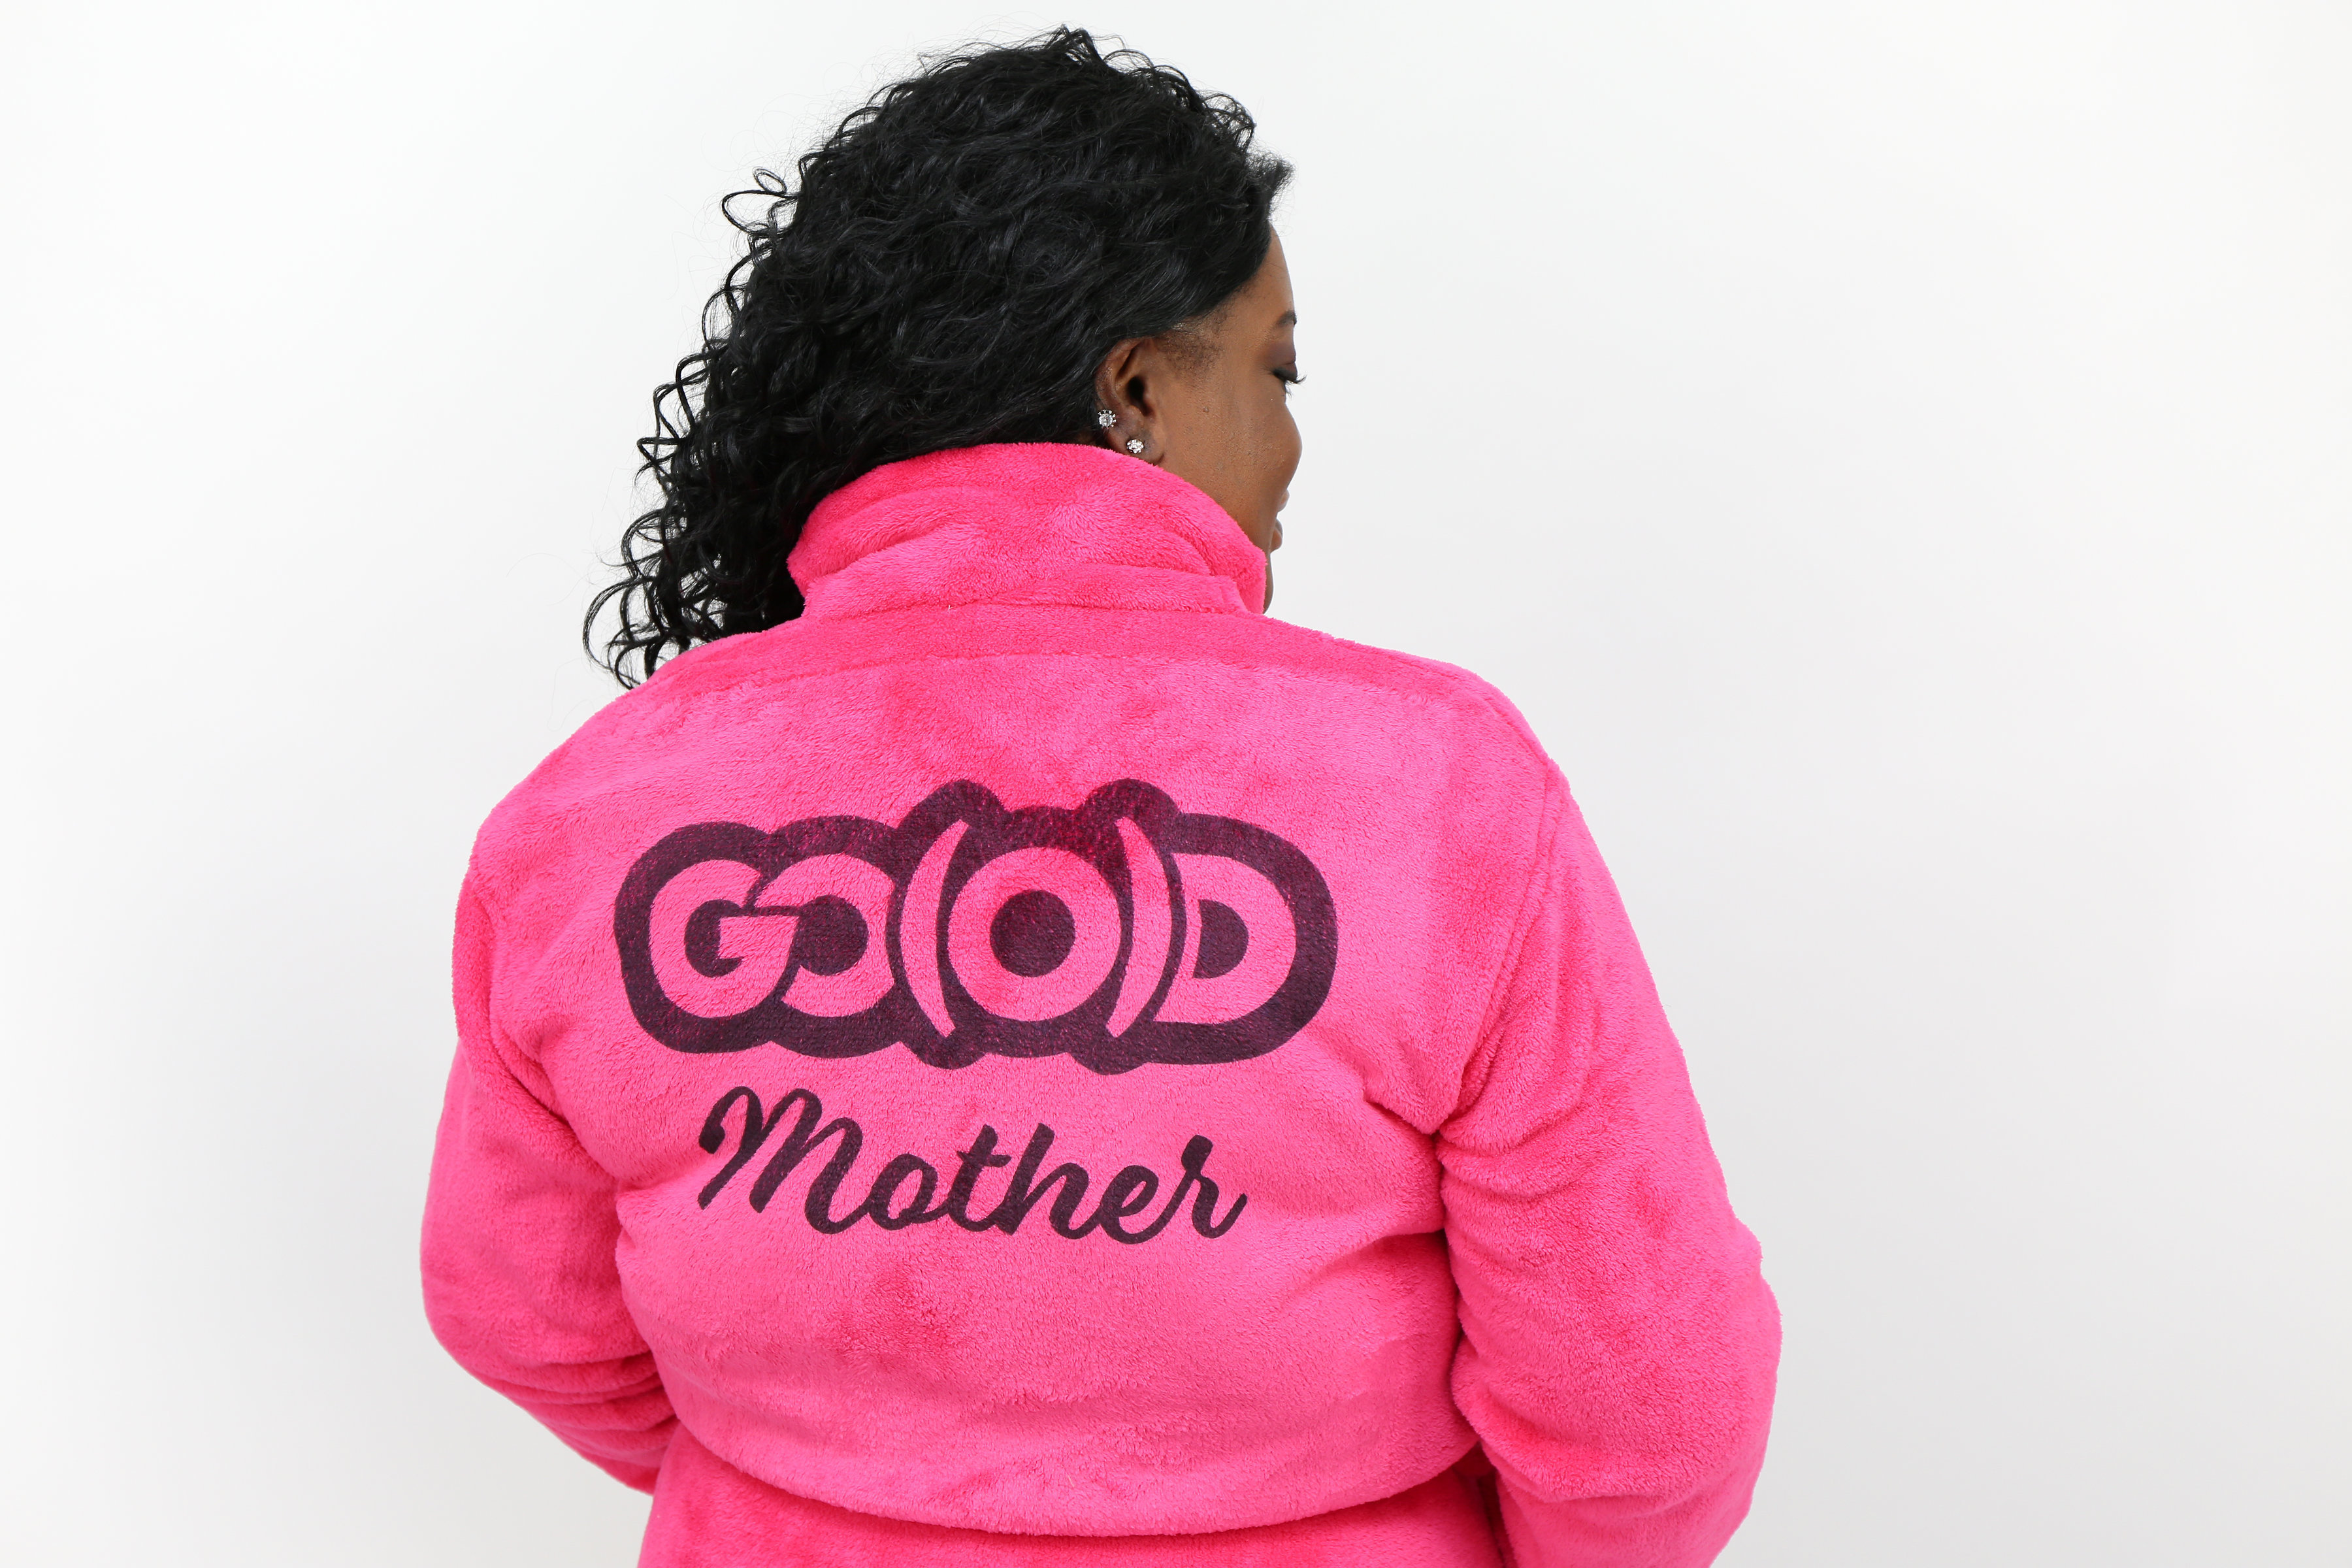 PLUSH GO(O)D Mother Robe-Pink/Blk 00149